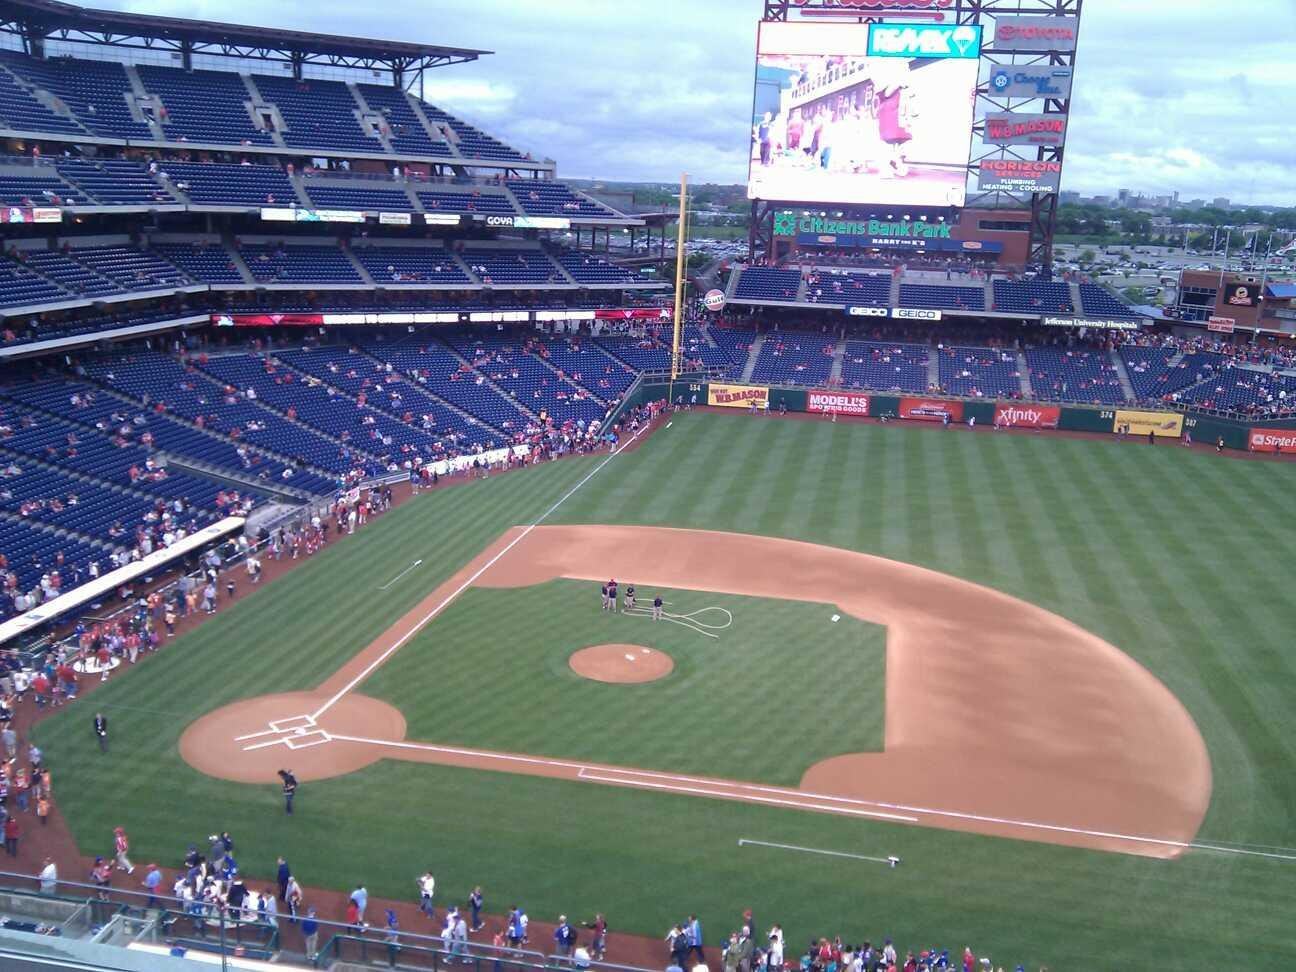 Citizens Bank Park Section 315 Row 6 Seat 10